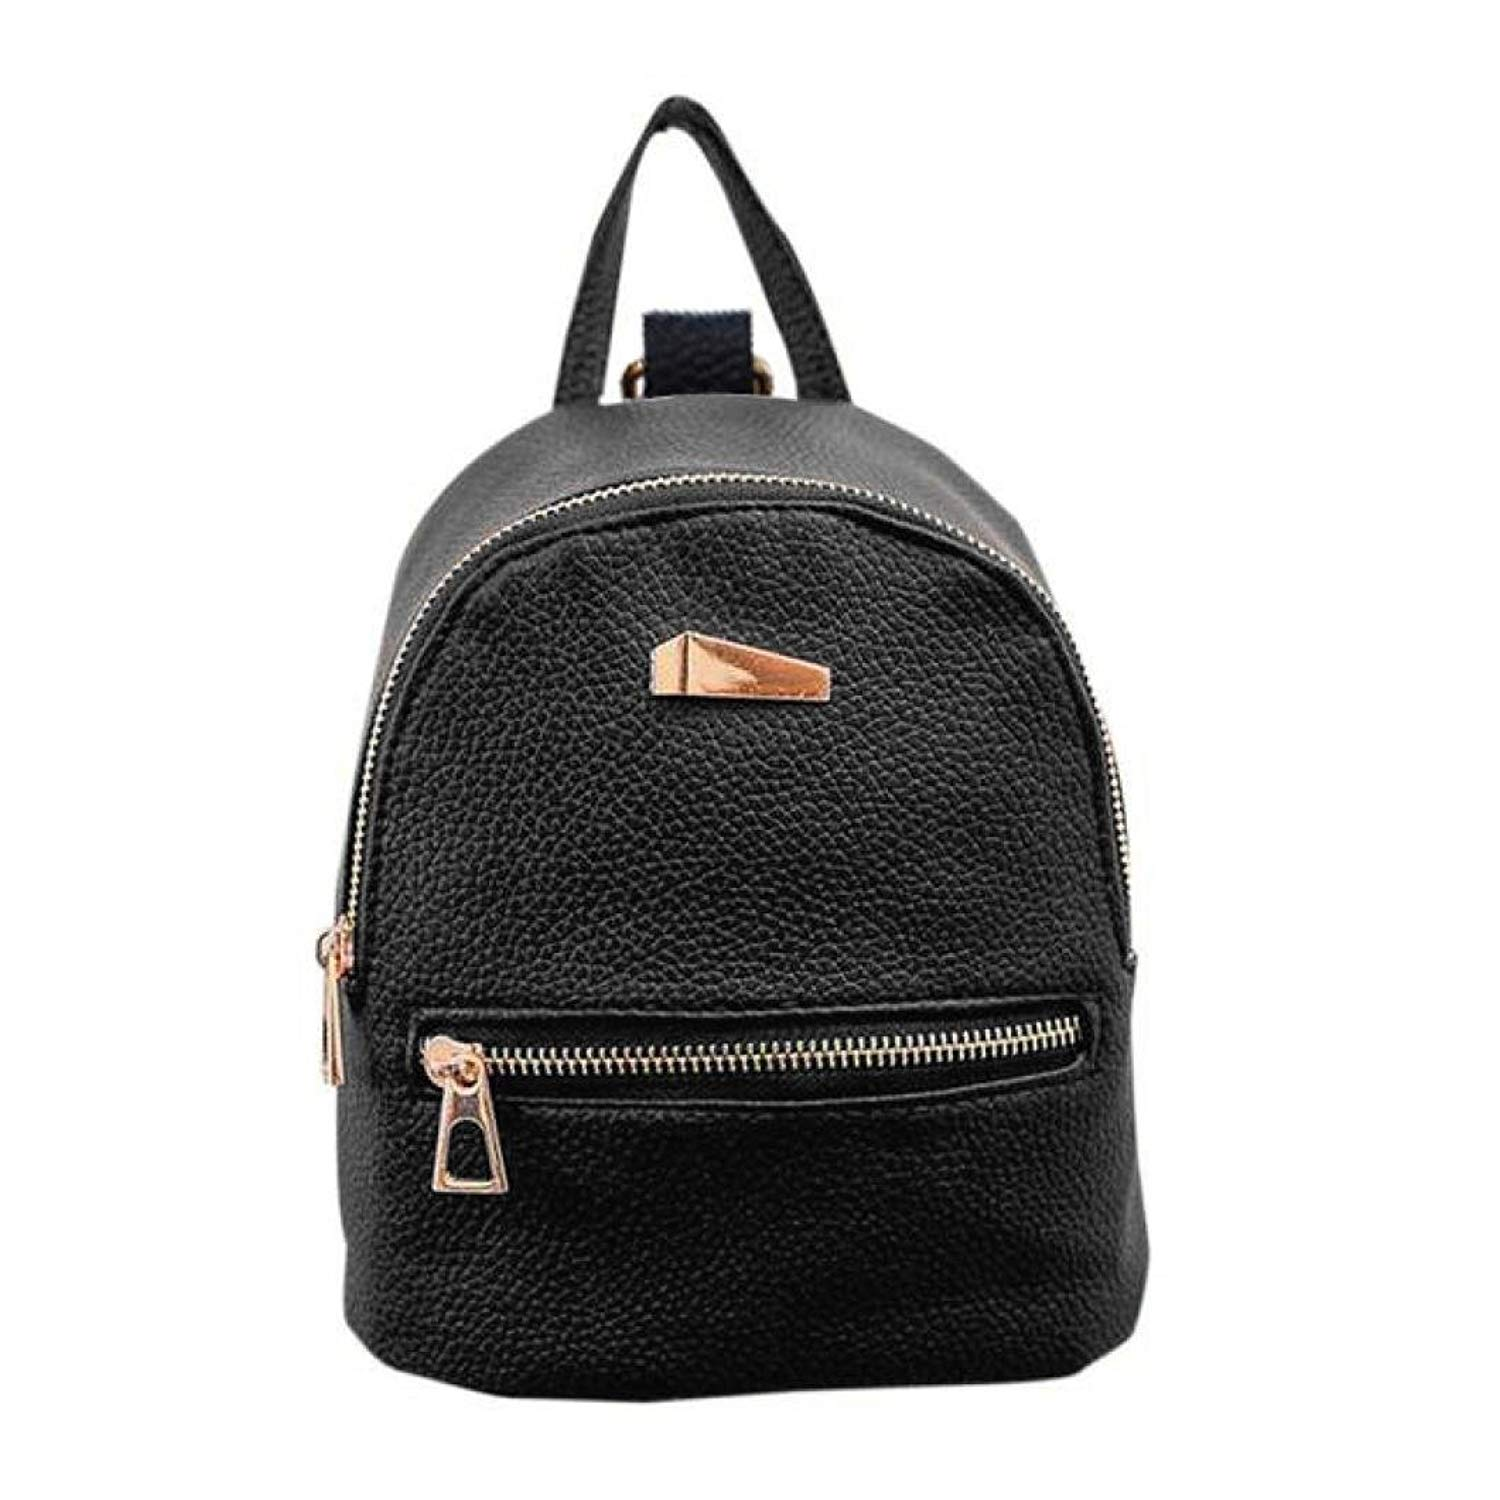 Womens Backpack School Backpack Shoulder Bag Fashion Handbag Travel Bag Messenger Bag Faionny